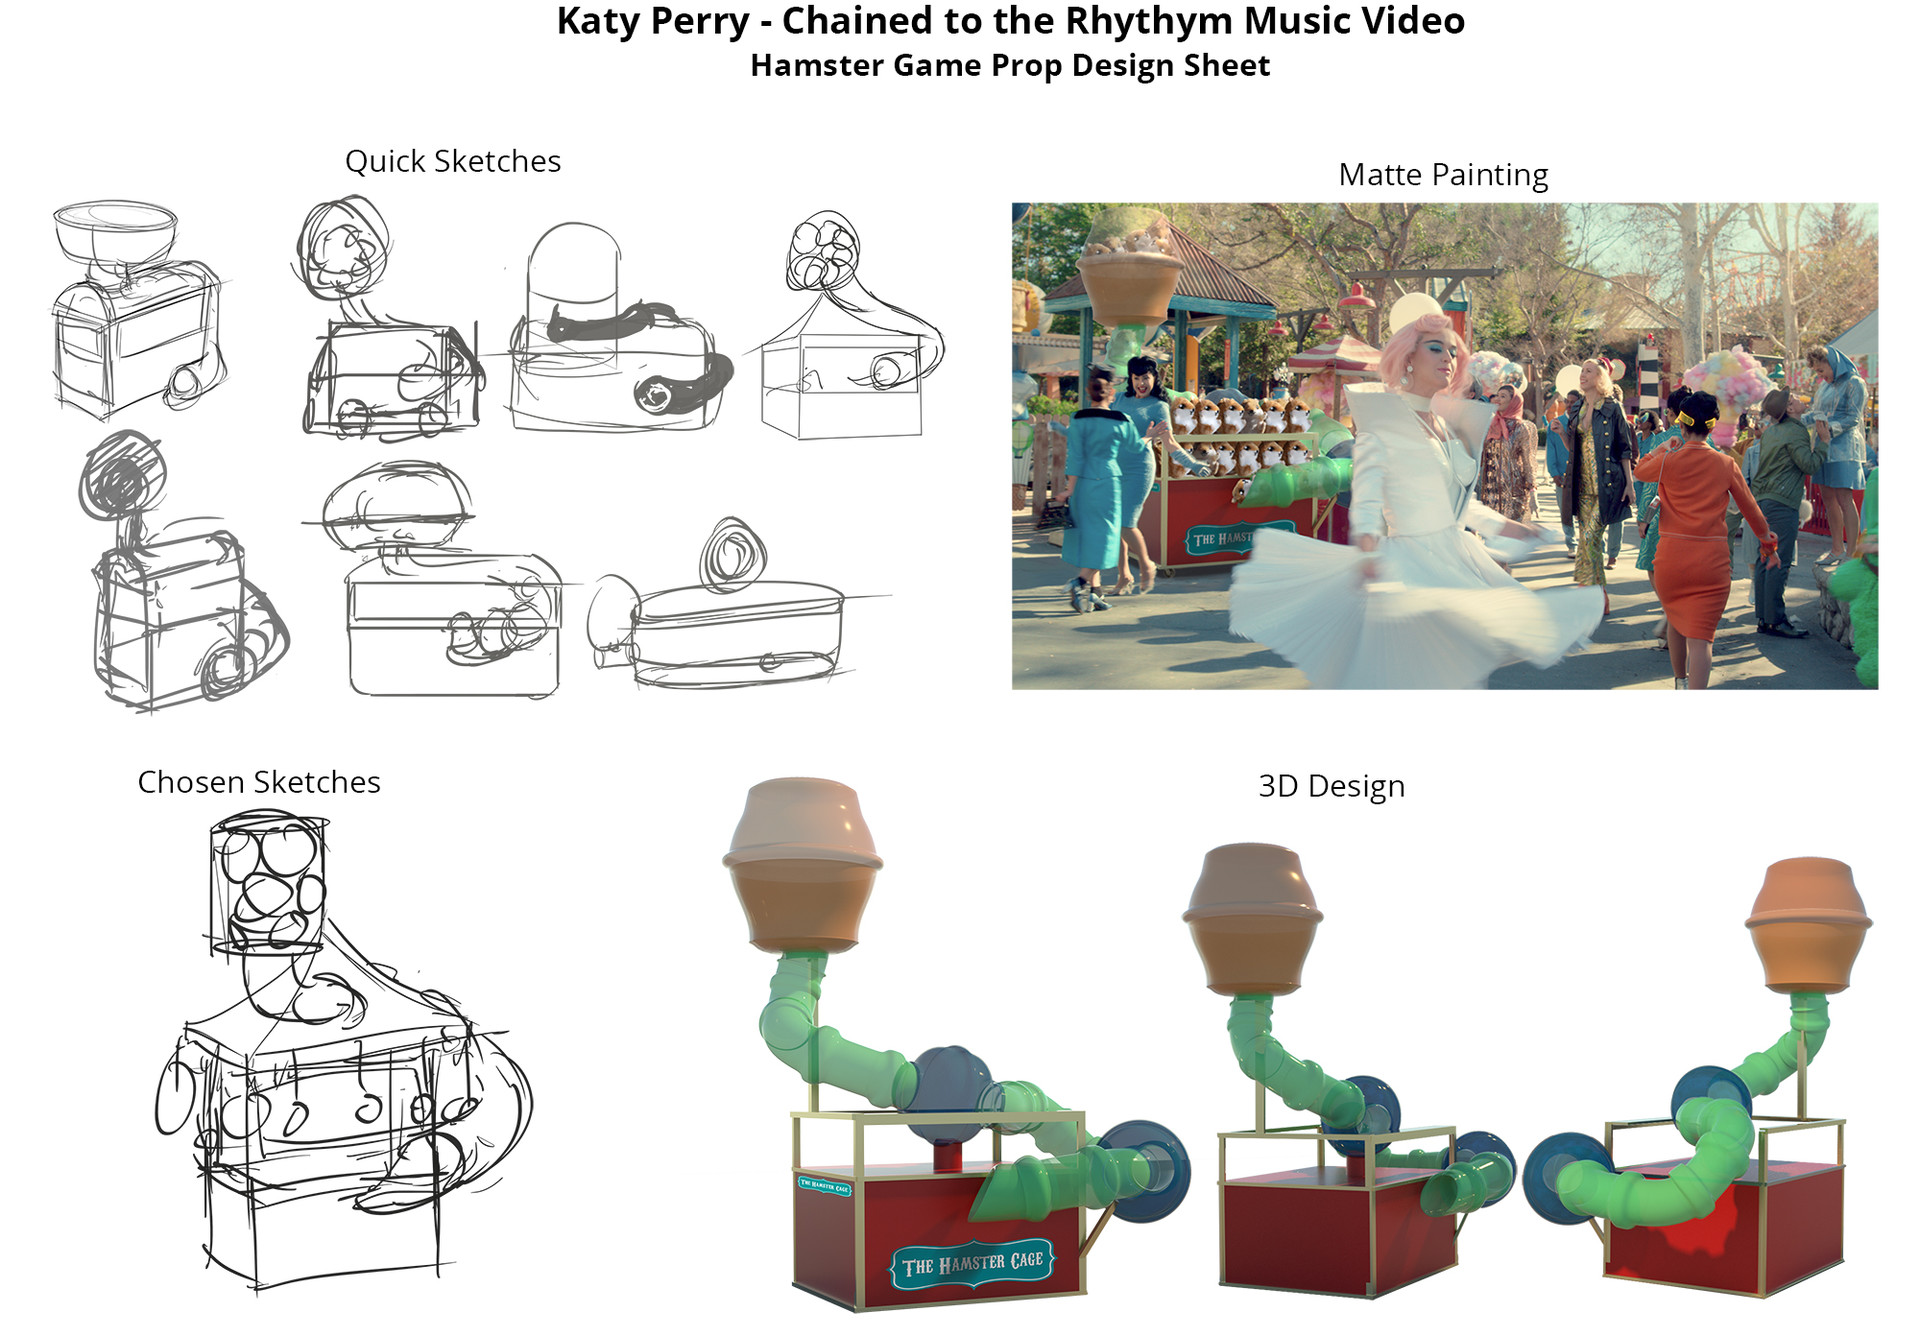 Katy Perry Chained to the Rhythm Music Video Plush Cart Design